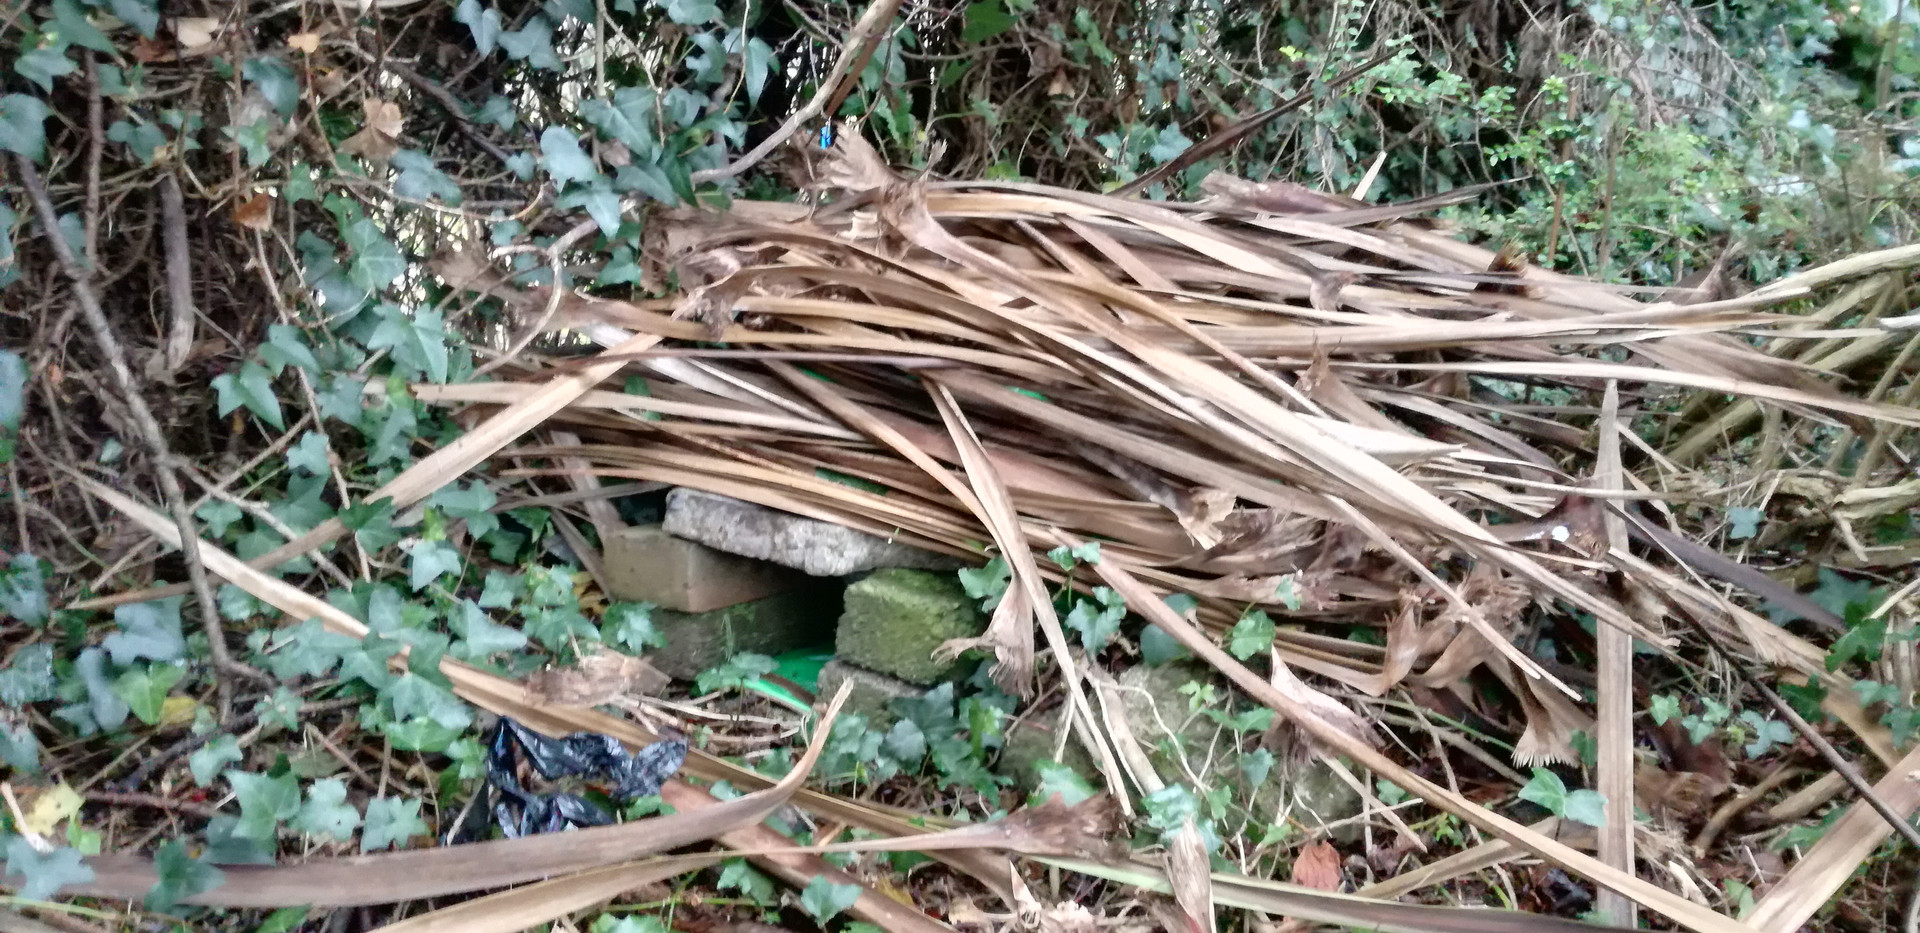 Our finished hedgehog home